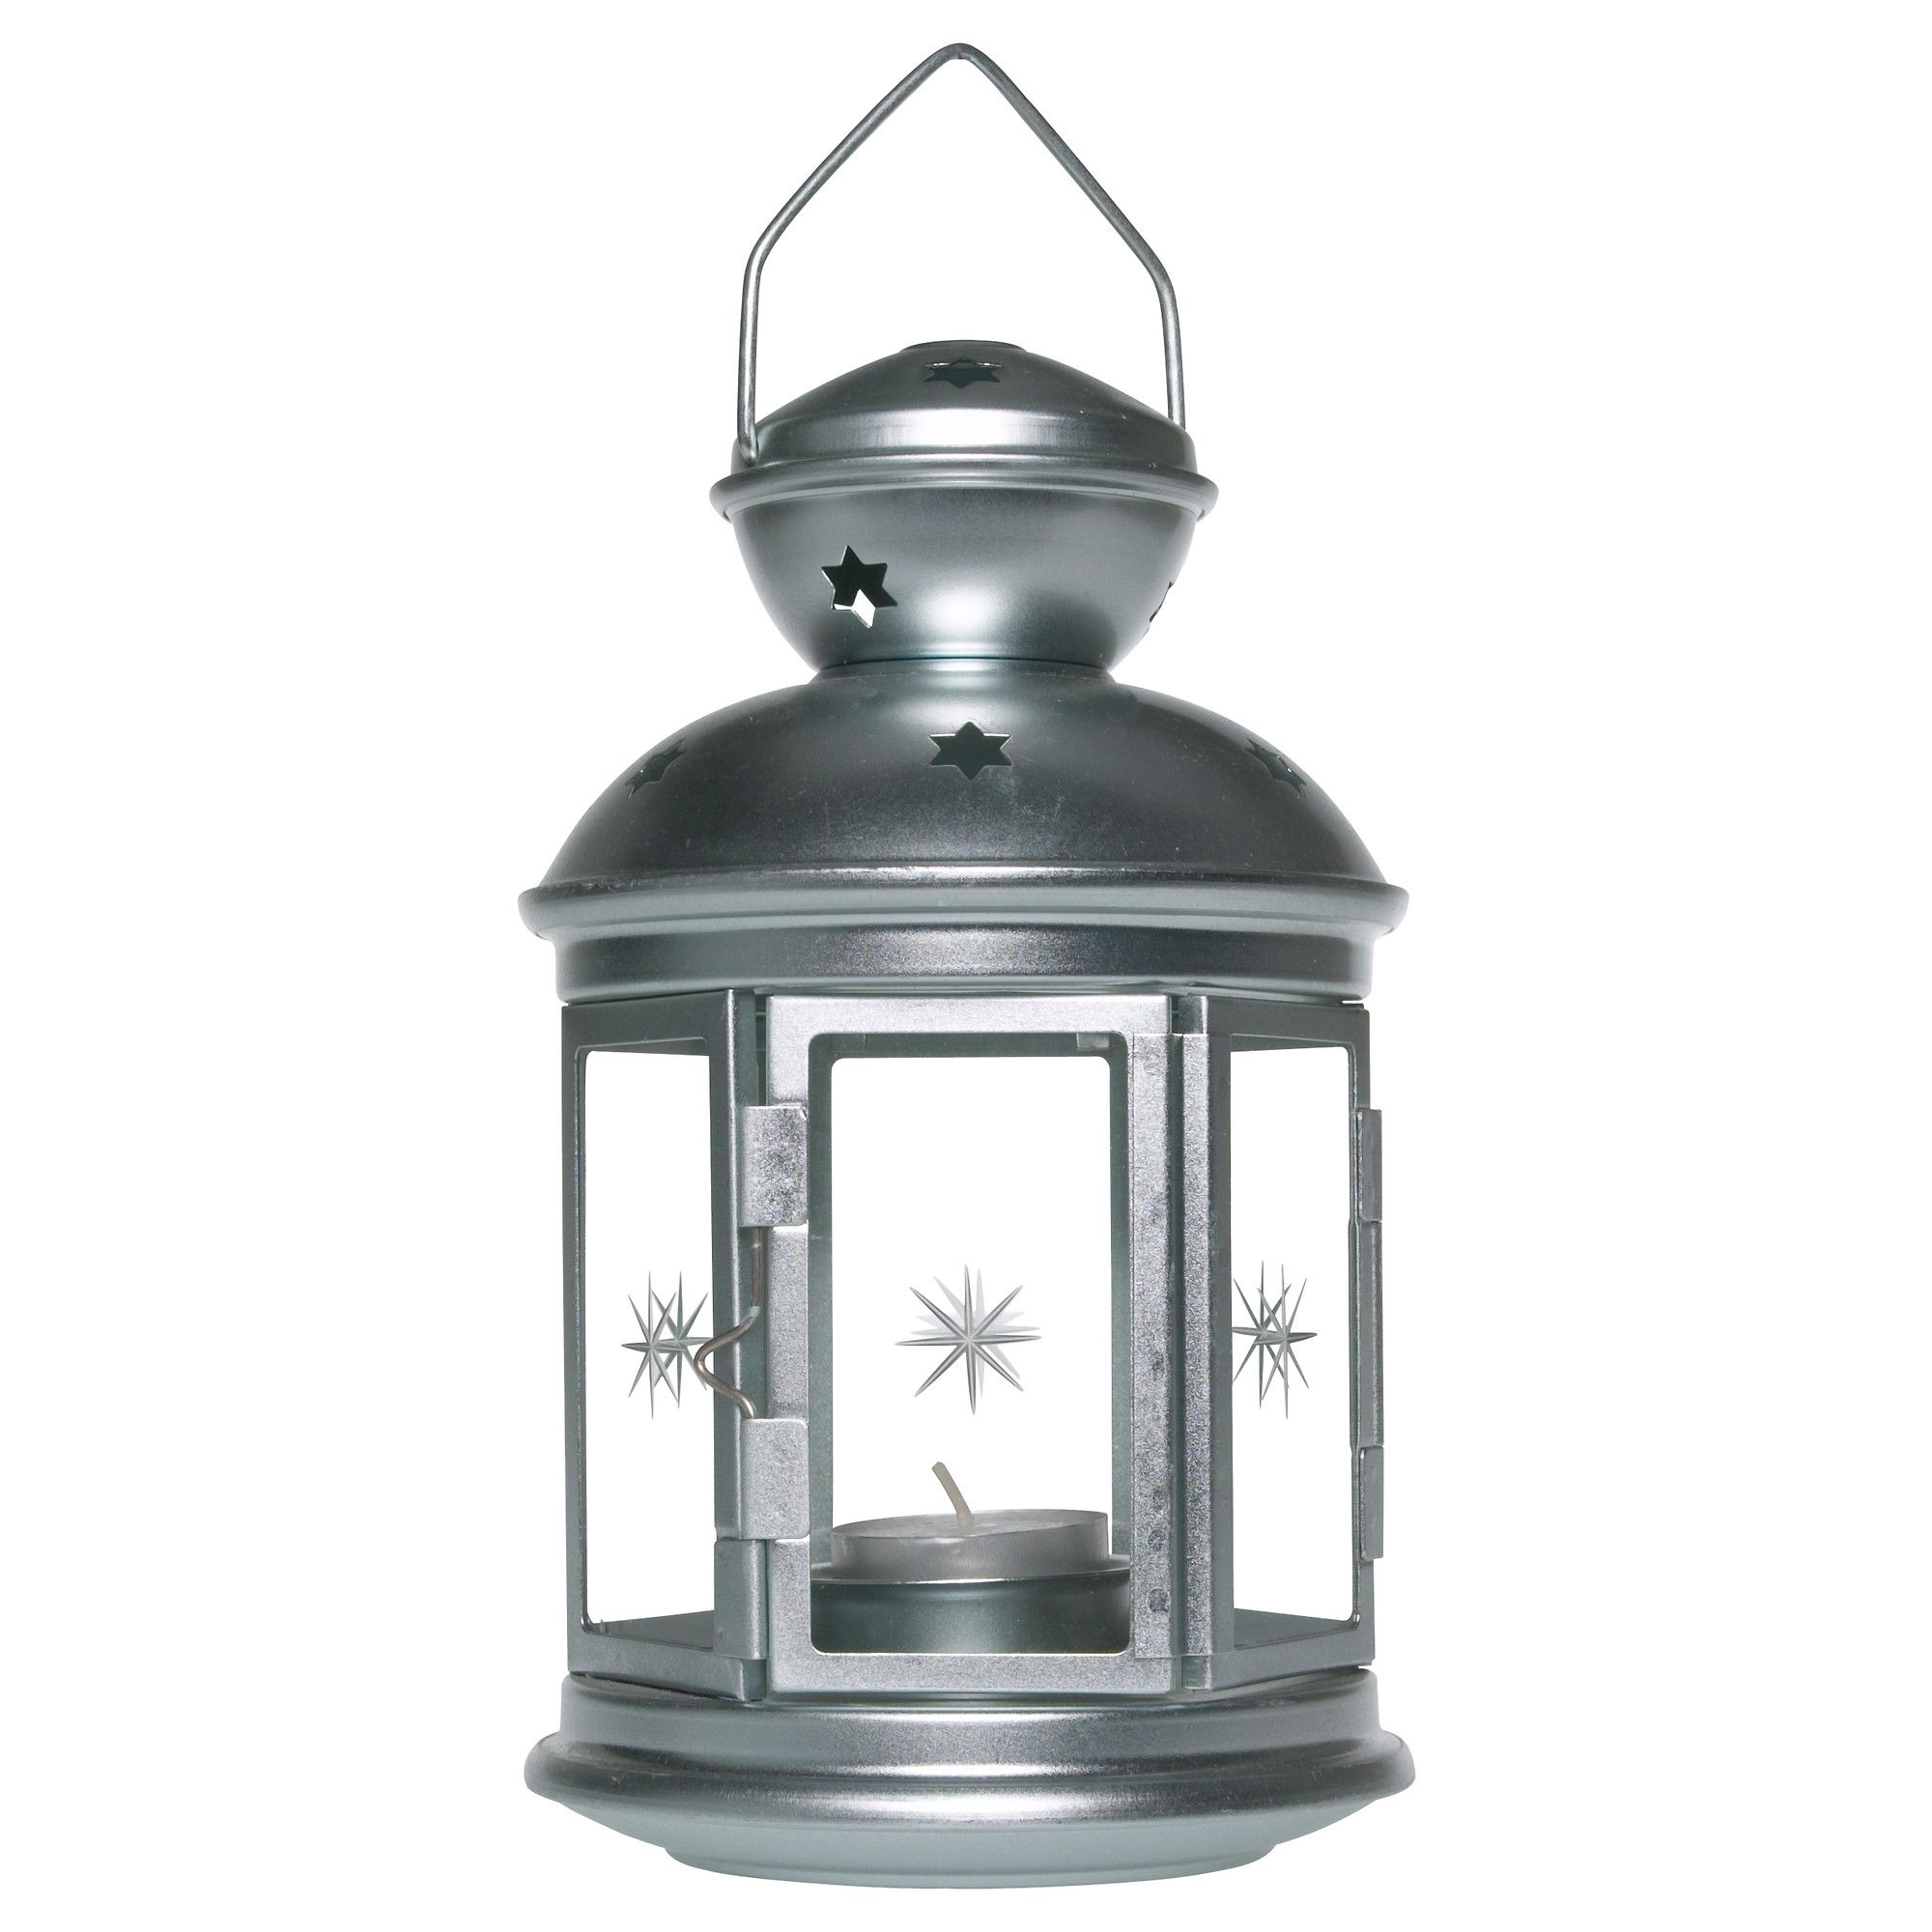 Ikea Outdoor Lanterns For Most Current Rotera Lantern For Tealight, Galvanized Indoor/outdoor Galvanized (View 8 of 20)